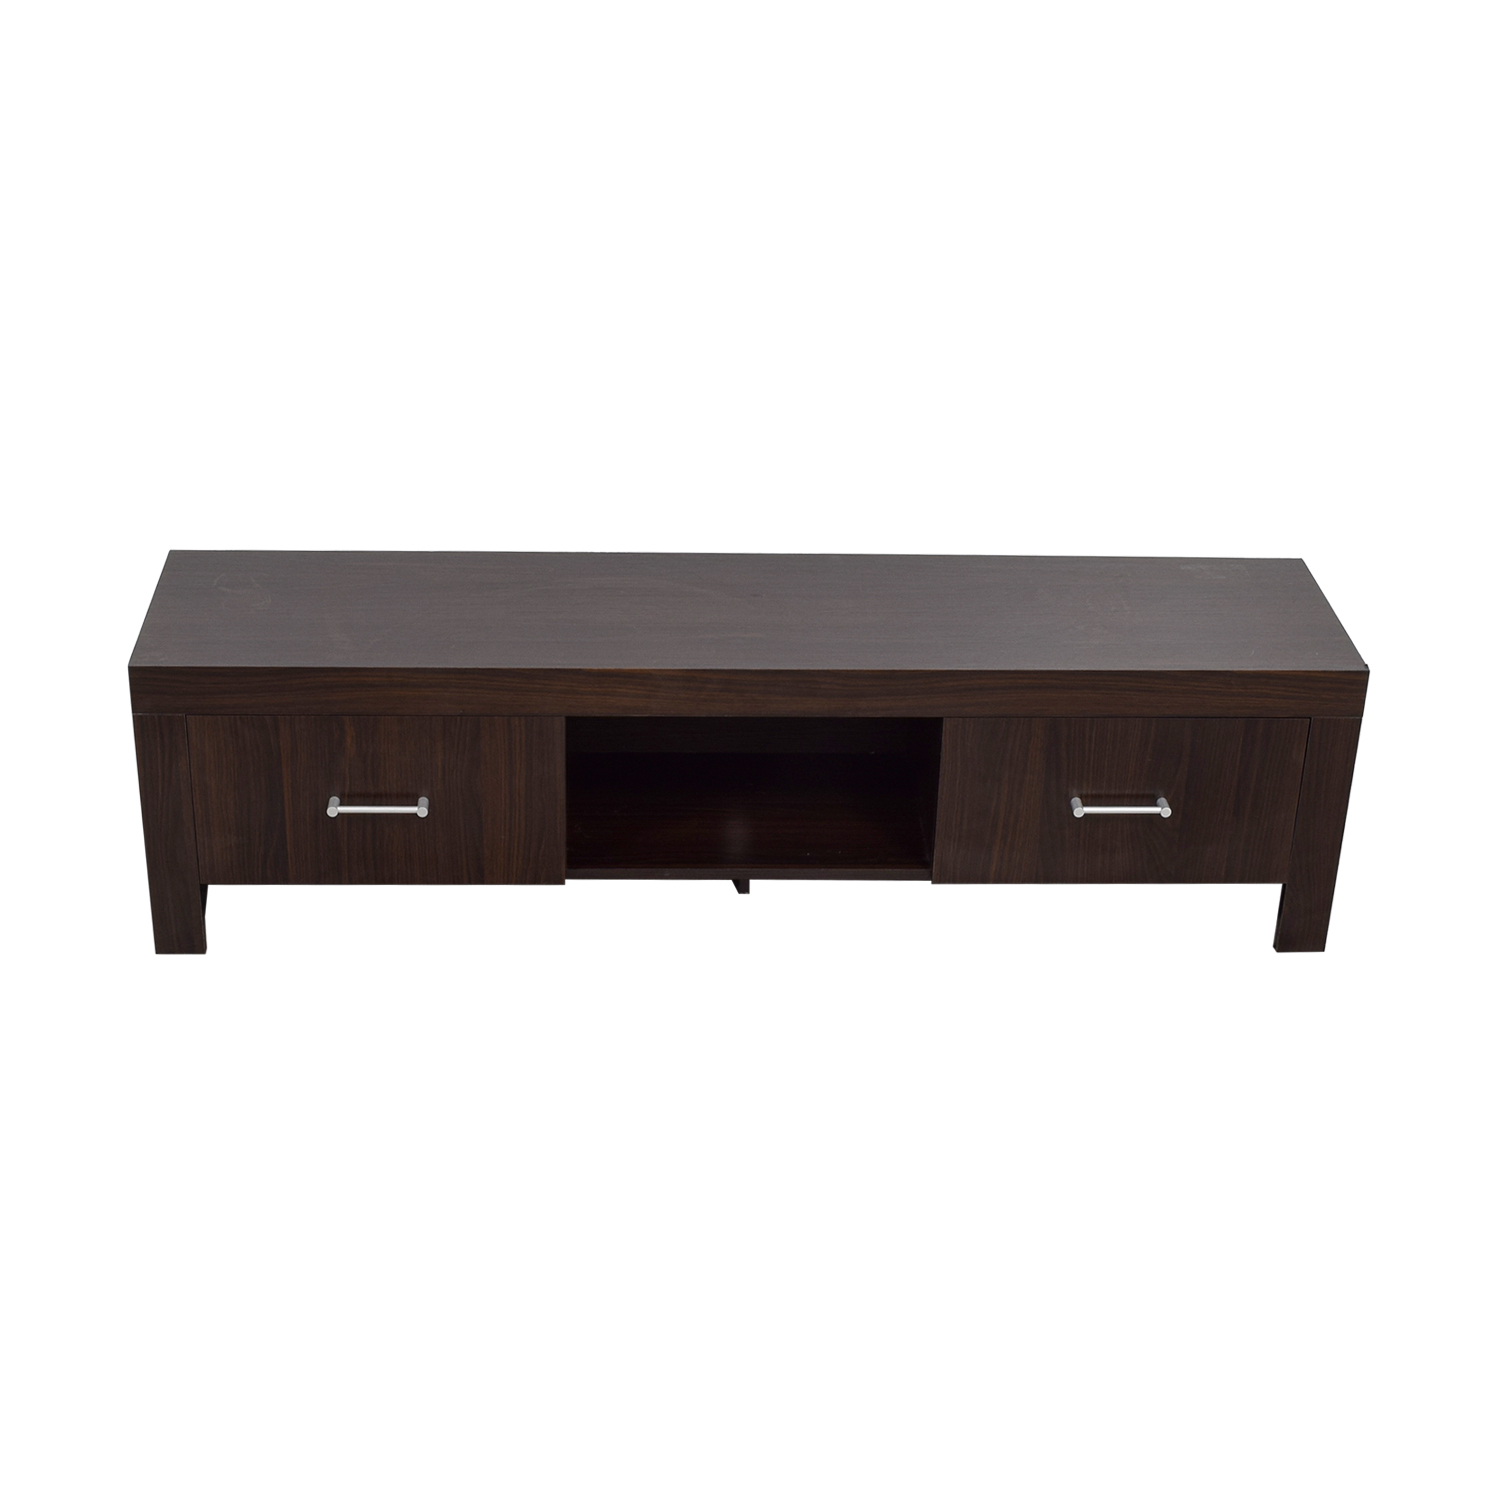 Rooms To Go Rooms To Go Two-Drawer TV Console